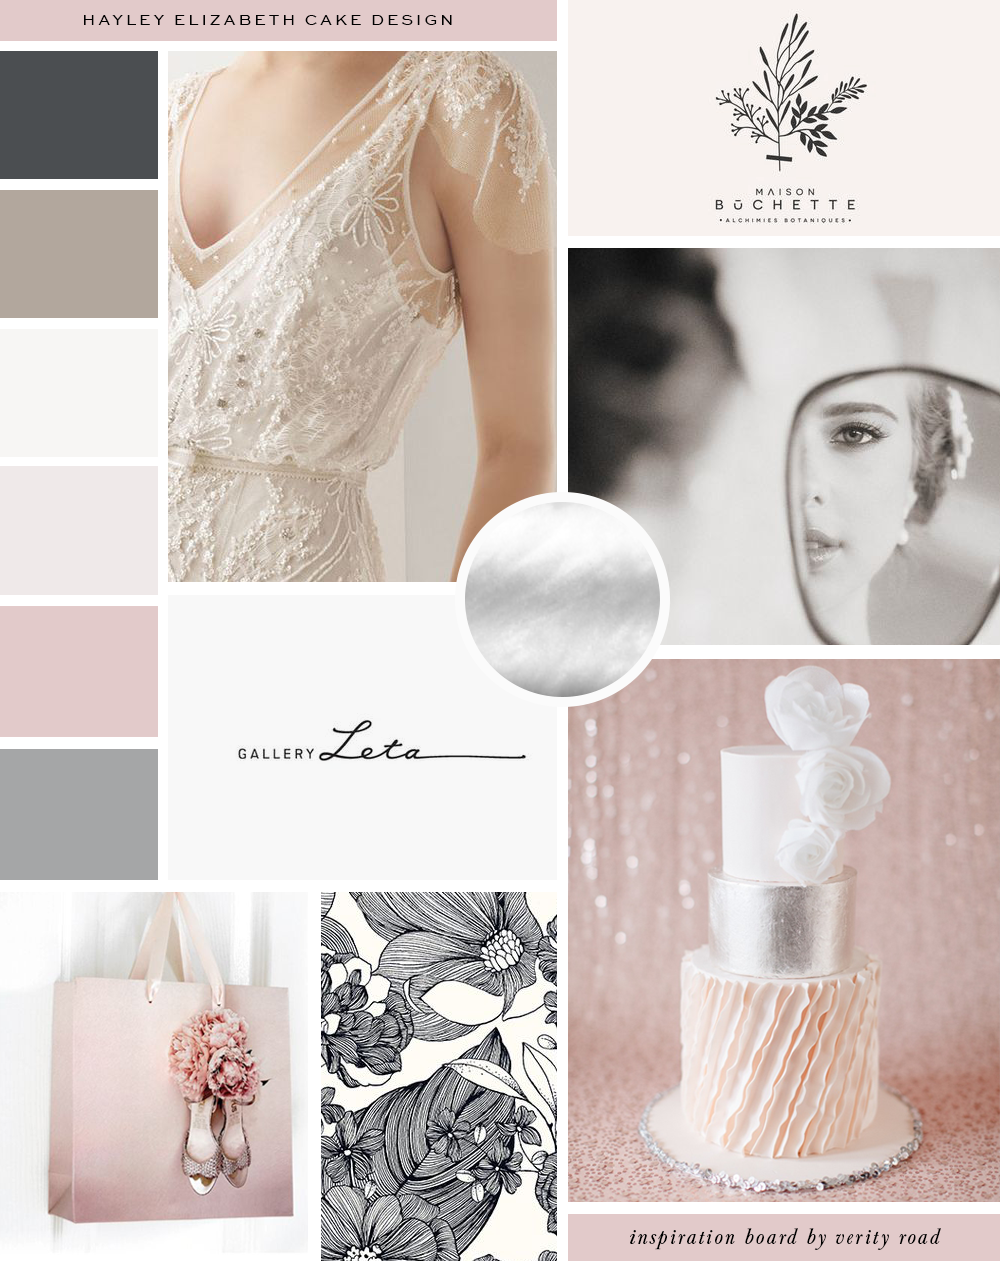 Mood board, inspiration board for the branding, brand design, brand styling of Hayley Elizabeth Cake Design by Verity Road. Feminine branding, feminine web design, luxury branding, female entrepreneur, wedding professional, wedding business branding. Dusky pink, grey, silver, taupe and charcoal. Elegant, romantic style.